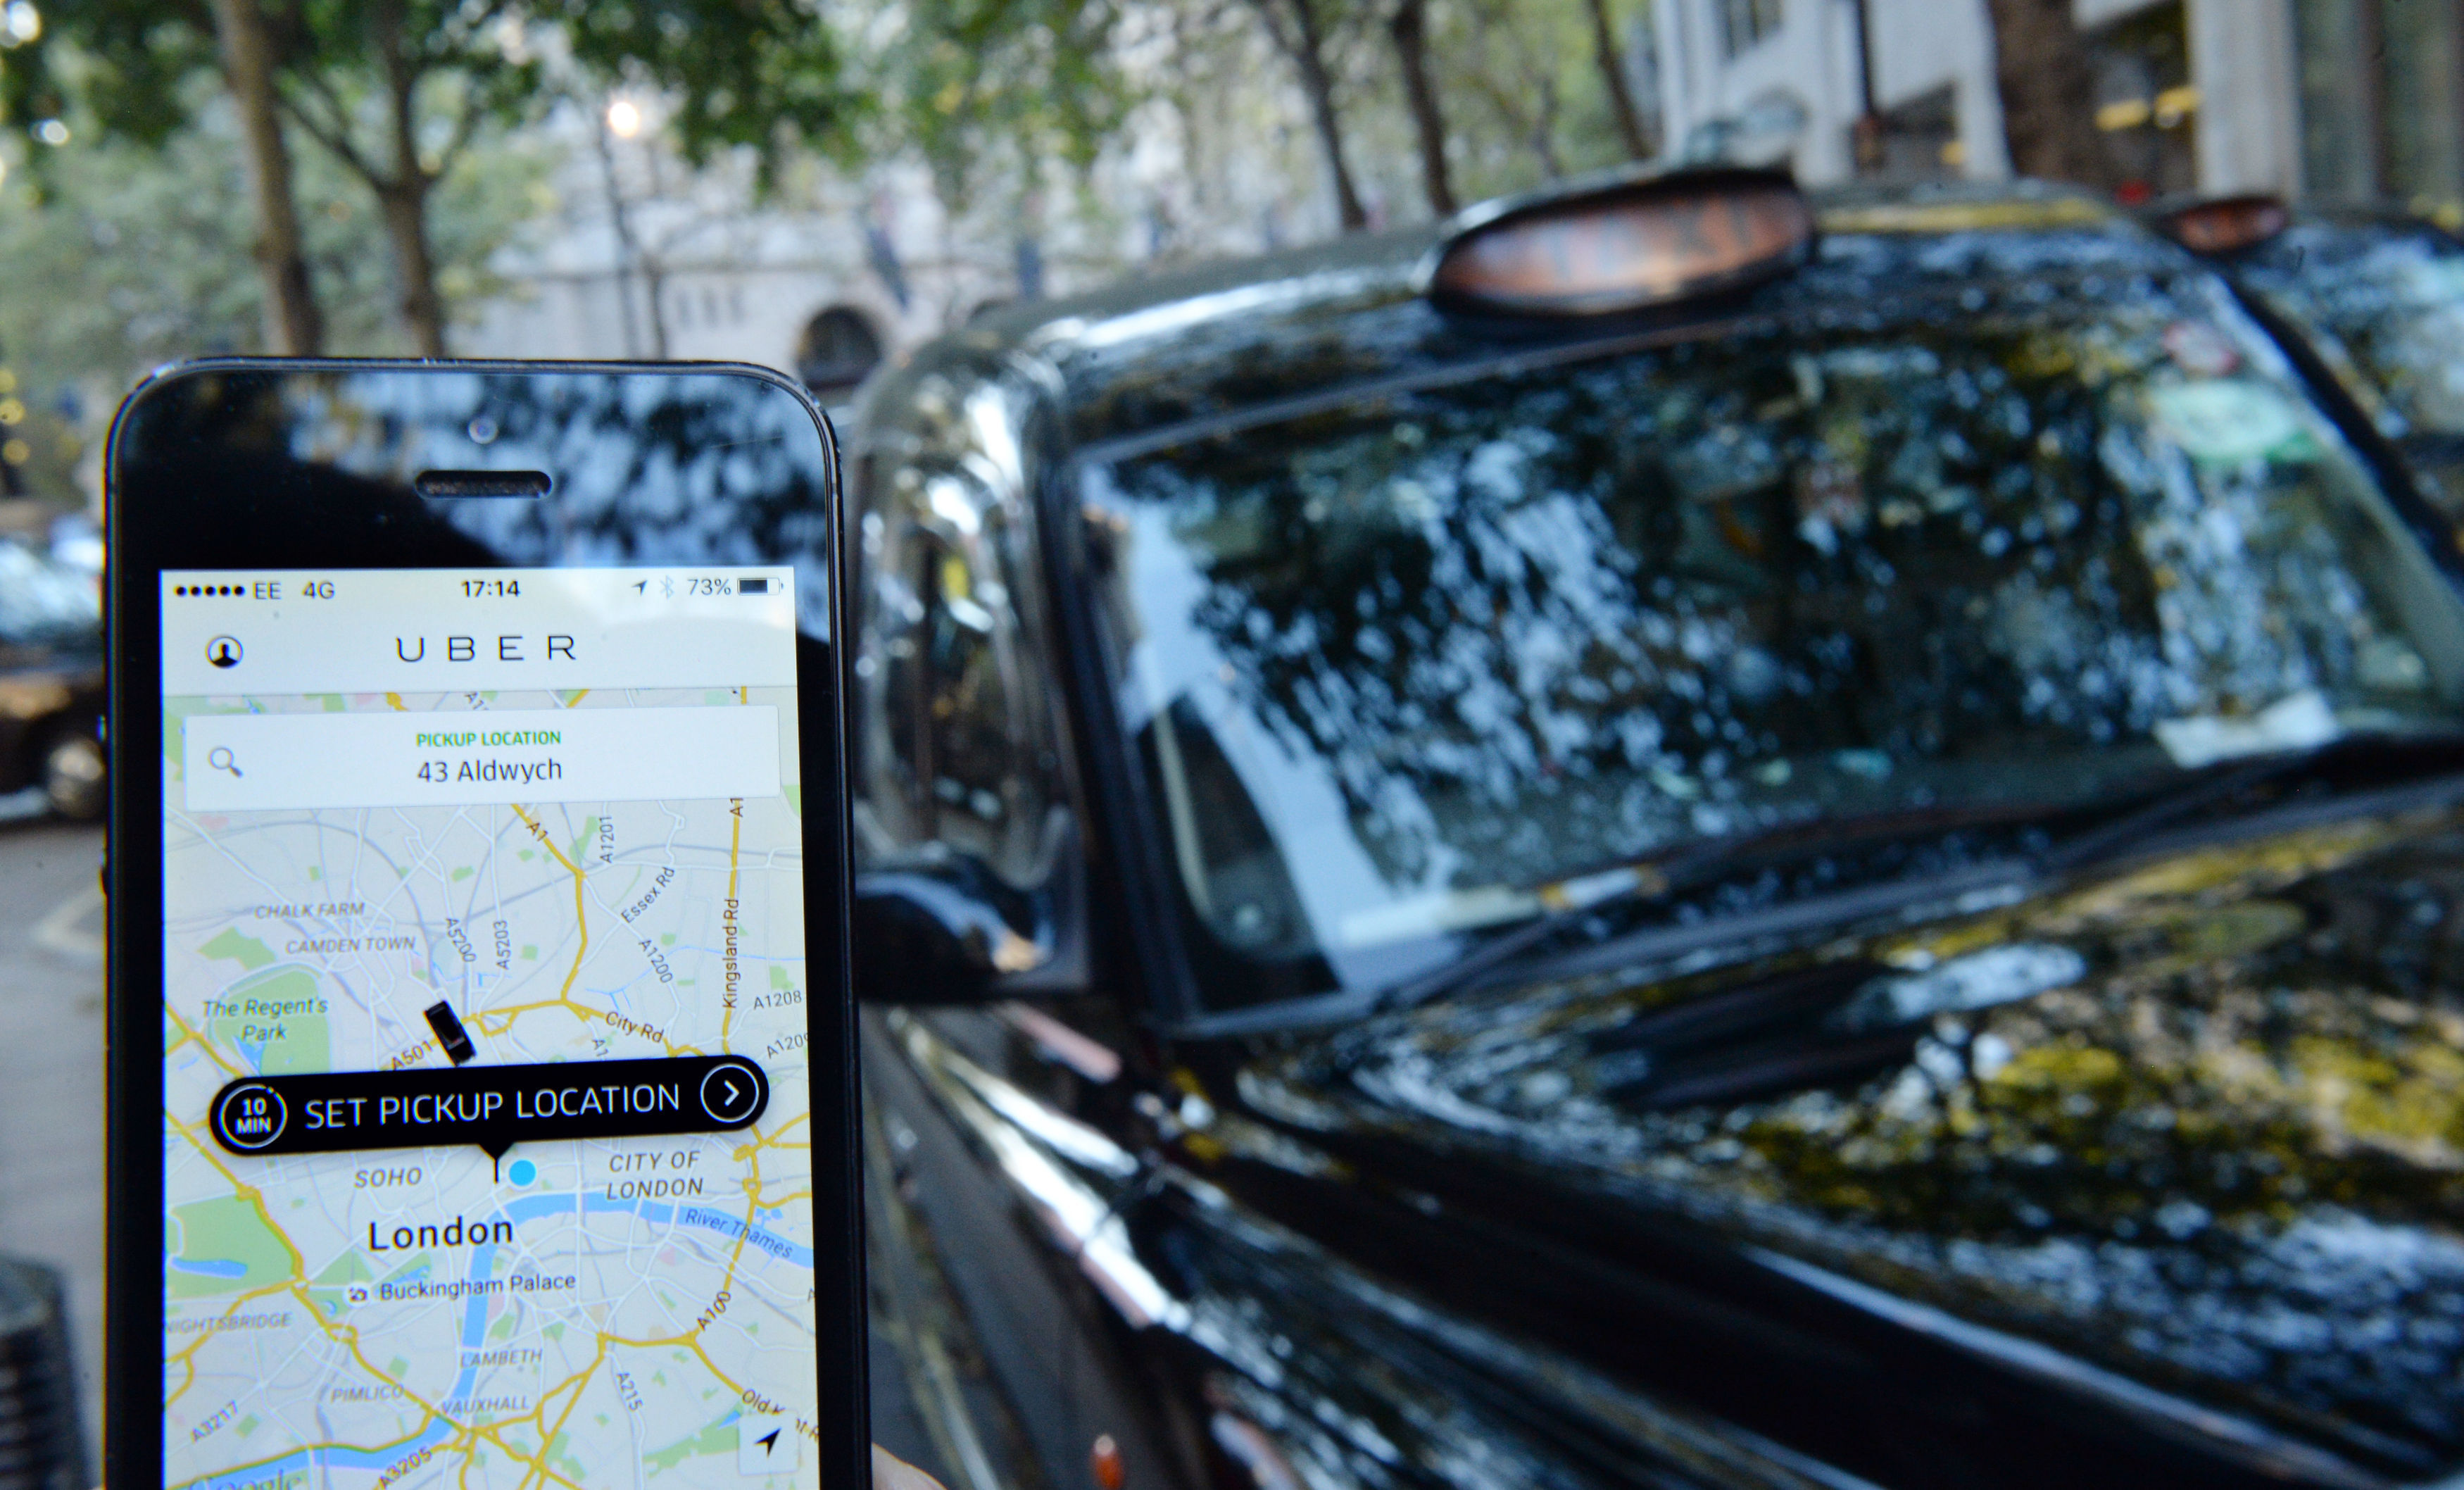 Uber Signals It's Willing to Make Concessions to London